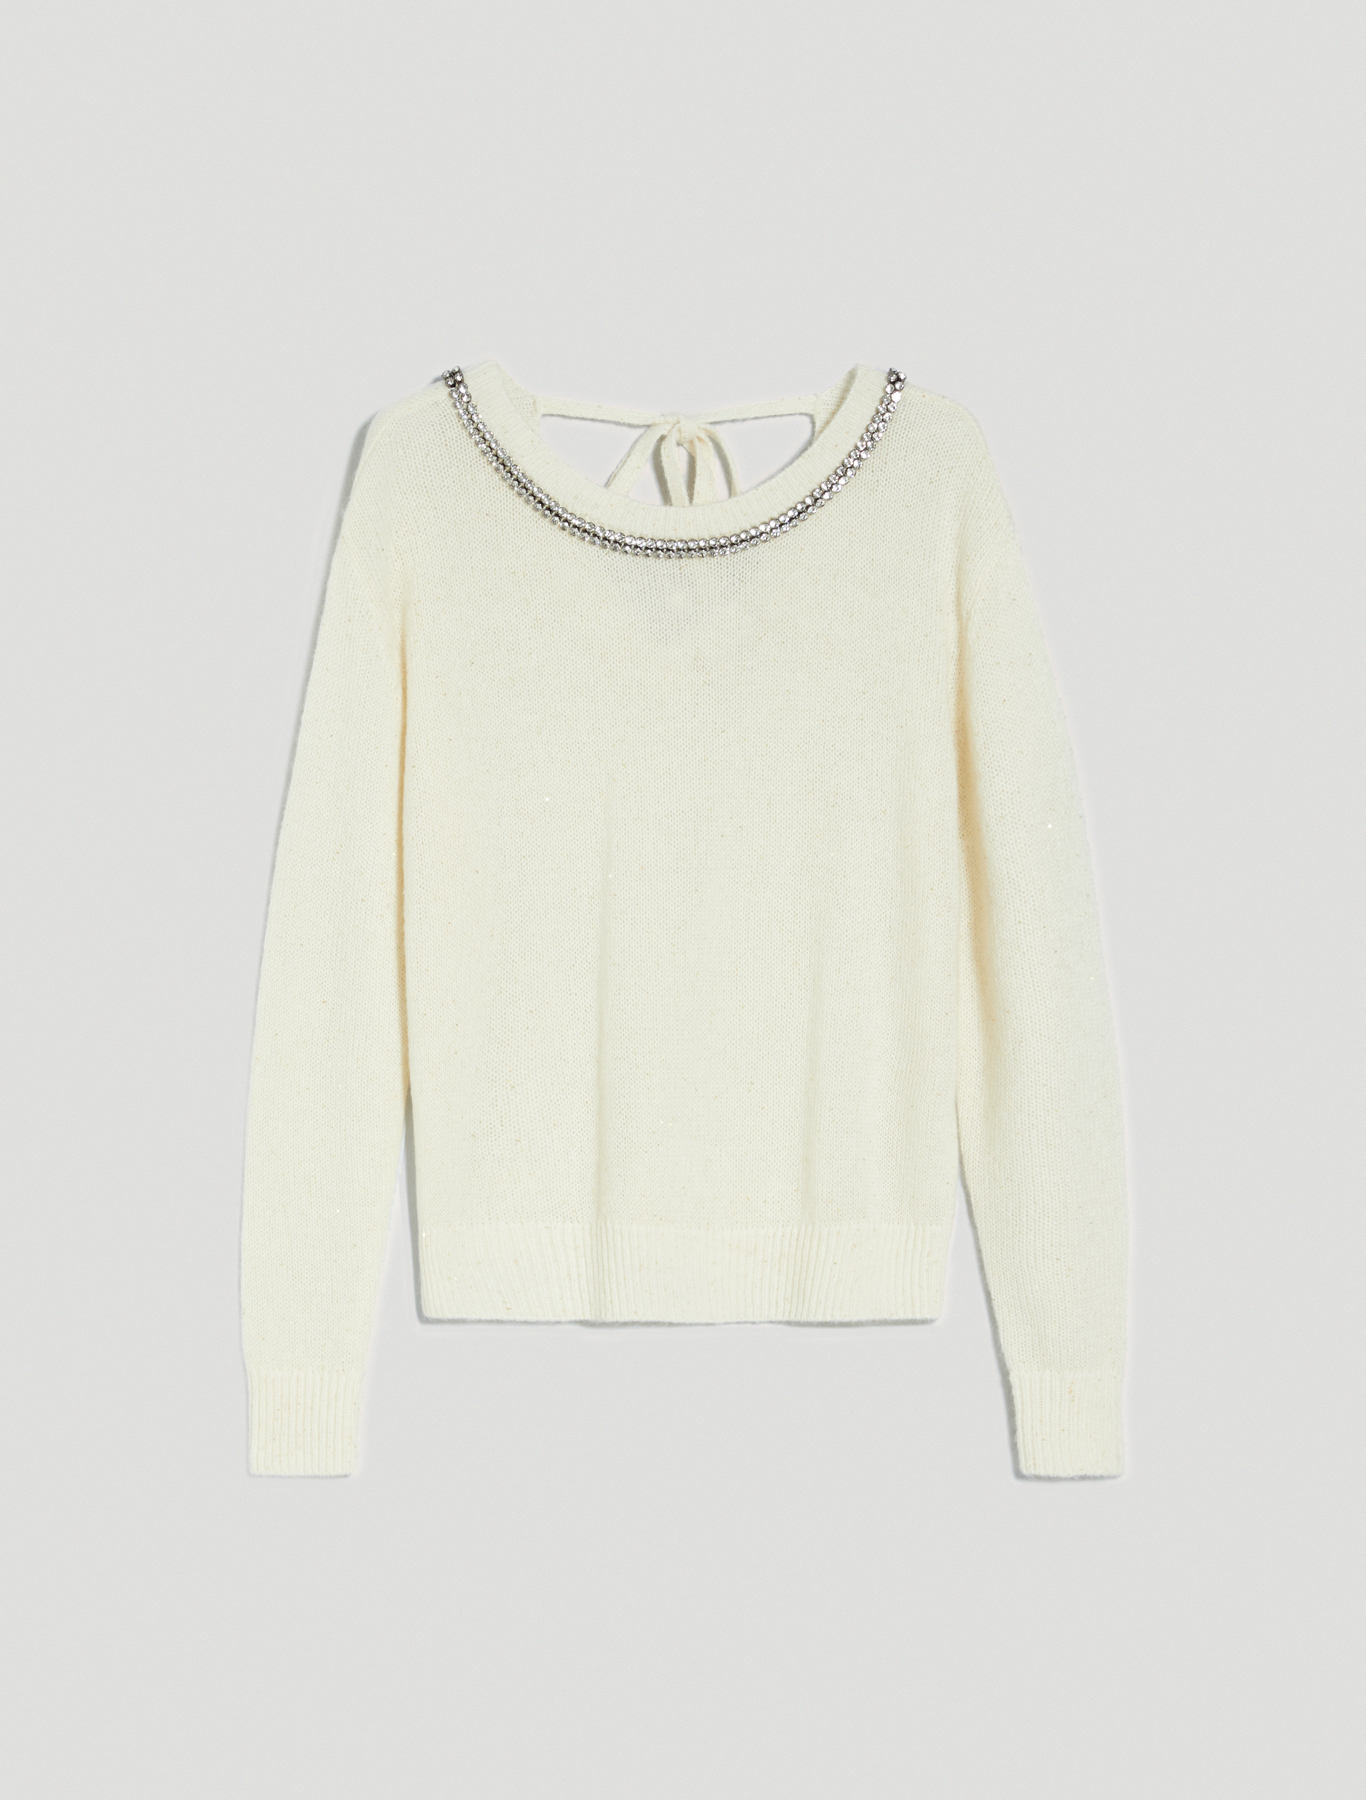 Jumper with rhinestones and sequins - ivory - pennyblack